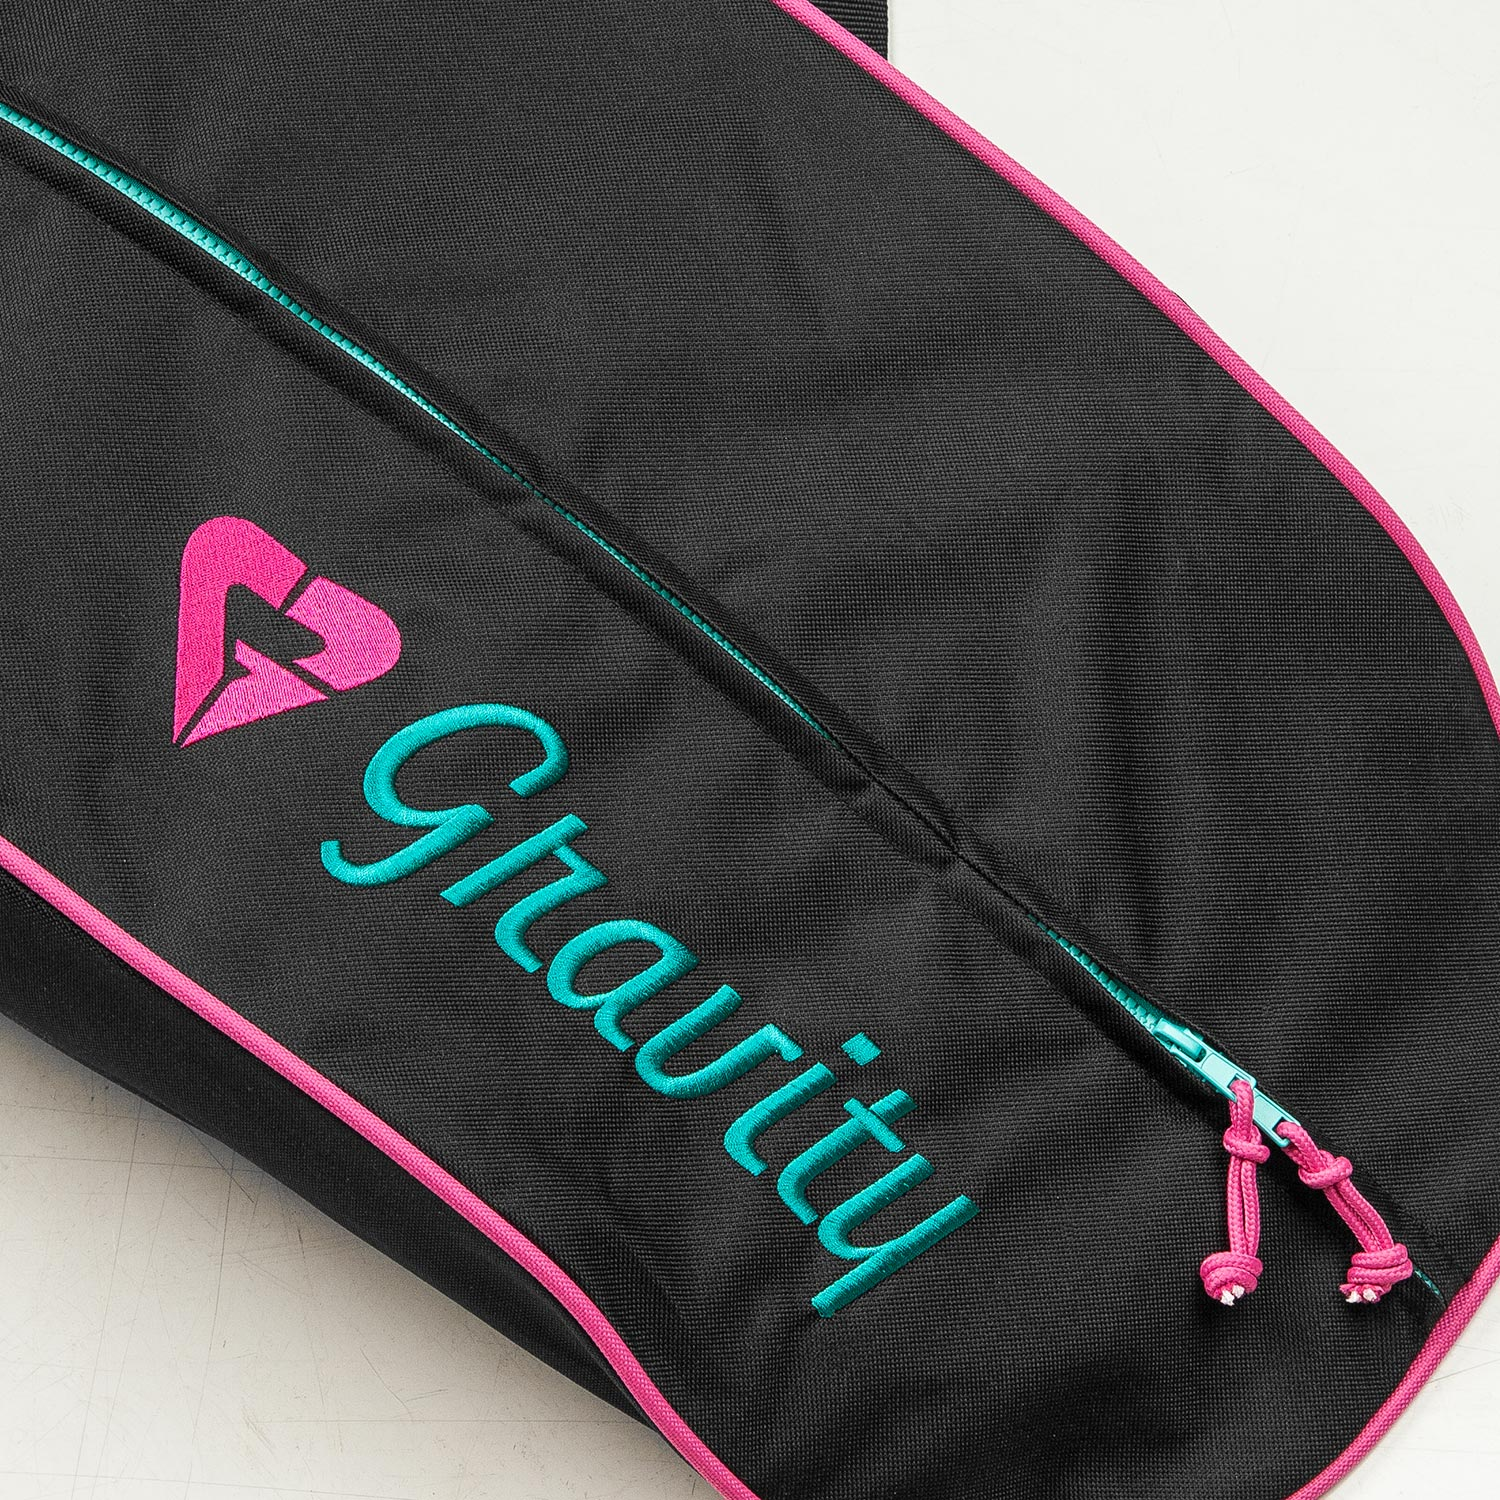 Obal na snowboard Gravity Rainbow Bag 16/17